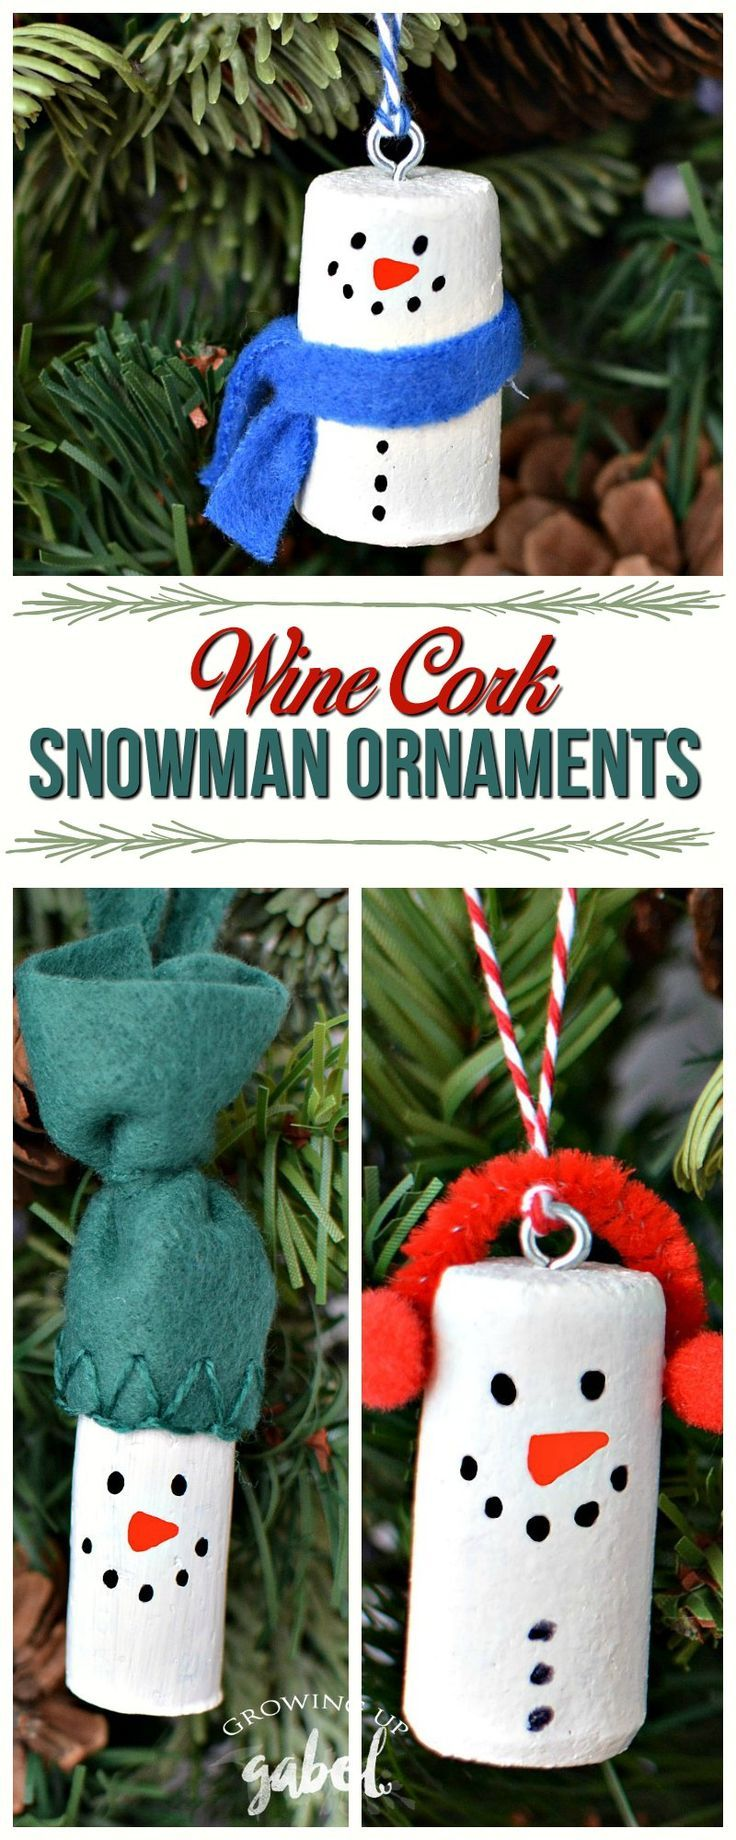 Make DIY wine cork snowman Christmas tree ornaments using old wine corks! Three variations on these cute wine cork Christmas ornaments! Great for kids to make for family and friends! #snowman #ChristmasOrnaments